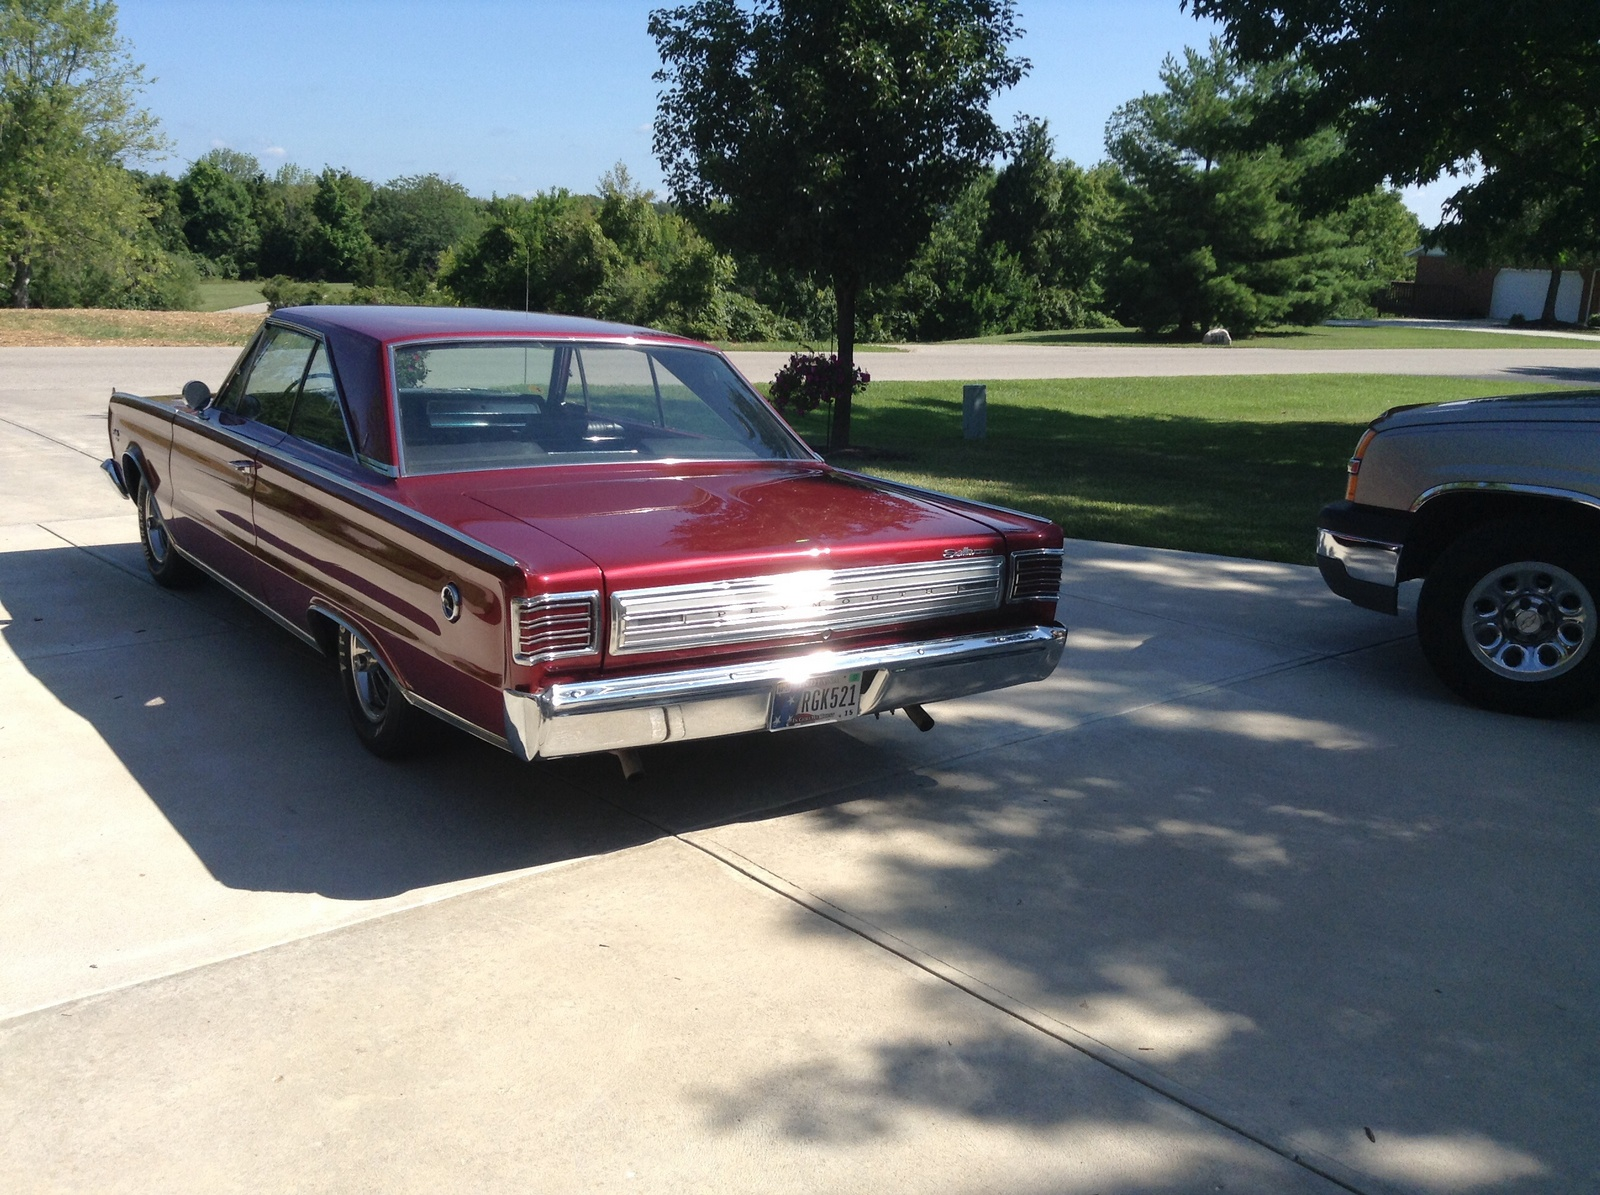 1965 Plymouth Valiant Pictures C15134 furthermore 06 08 Ran Bulge F furthermore 5BVECTORTITLEURL 5D as well 7179750735 as well 1971 Torino Gt Rear. on 1971 plymouth road runner